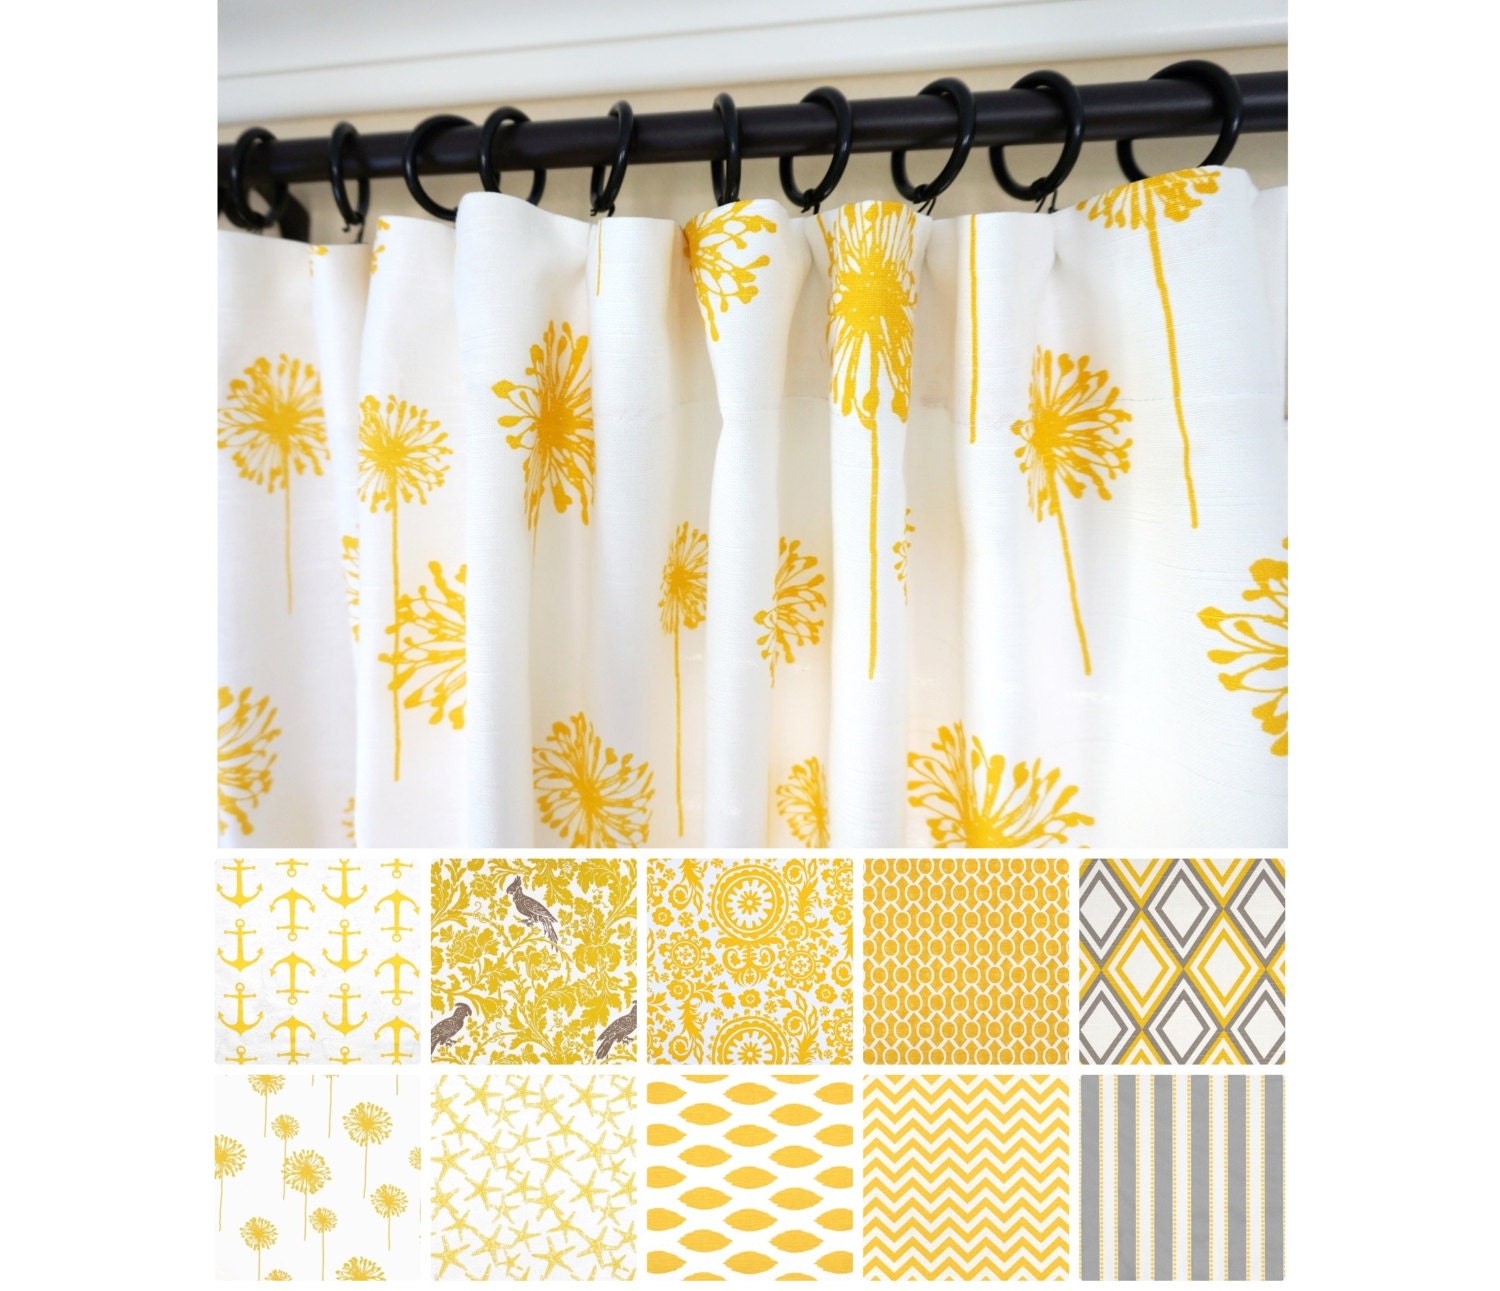 Kitchen Curtains Yellow And Gray: Yellow Window Curtains.Yellow Kelp Curtains. Grey